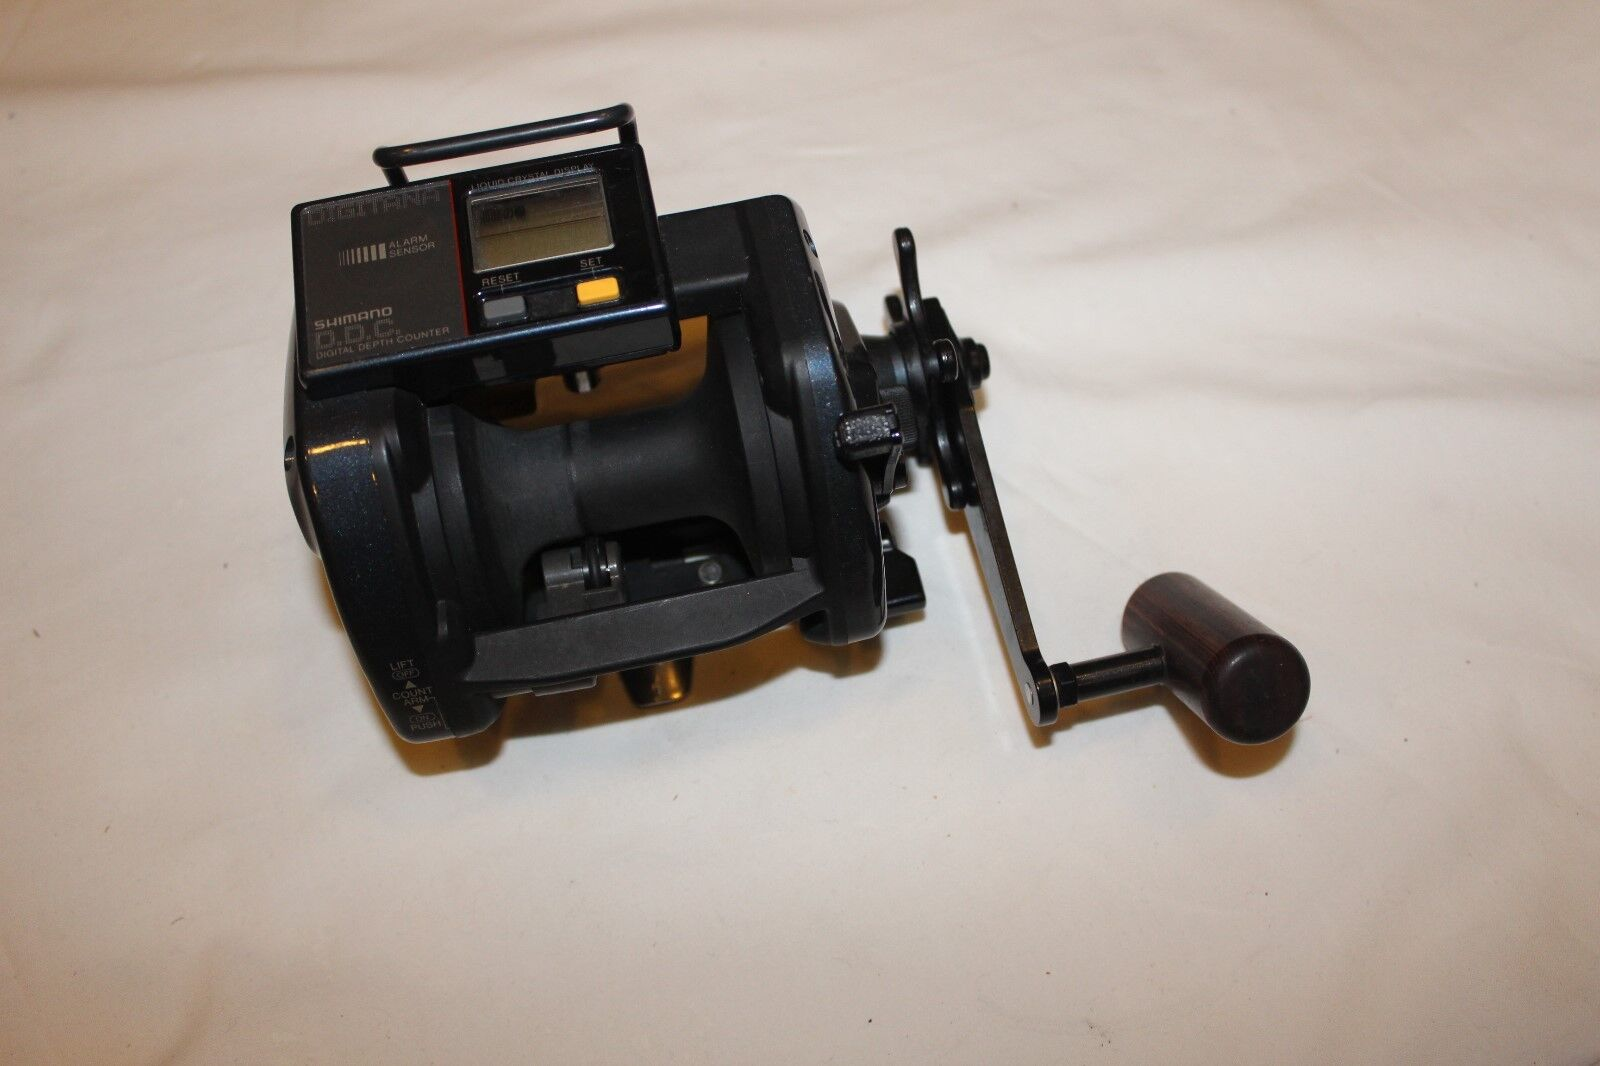 SHIMANO  DIGITANA  6000 -TITANOS GT-MADE IN  JAPAN  -Nr 569  we take customers as our god